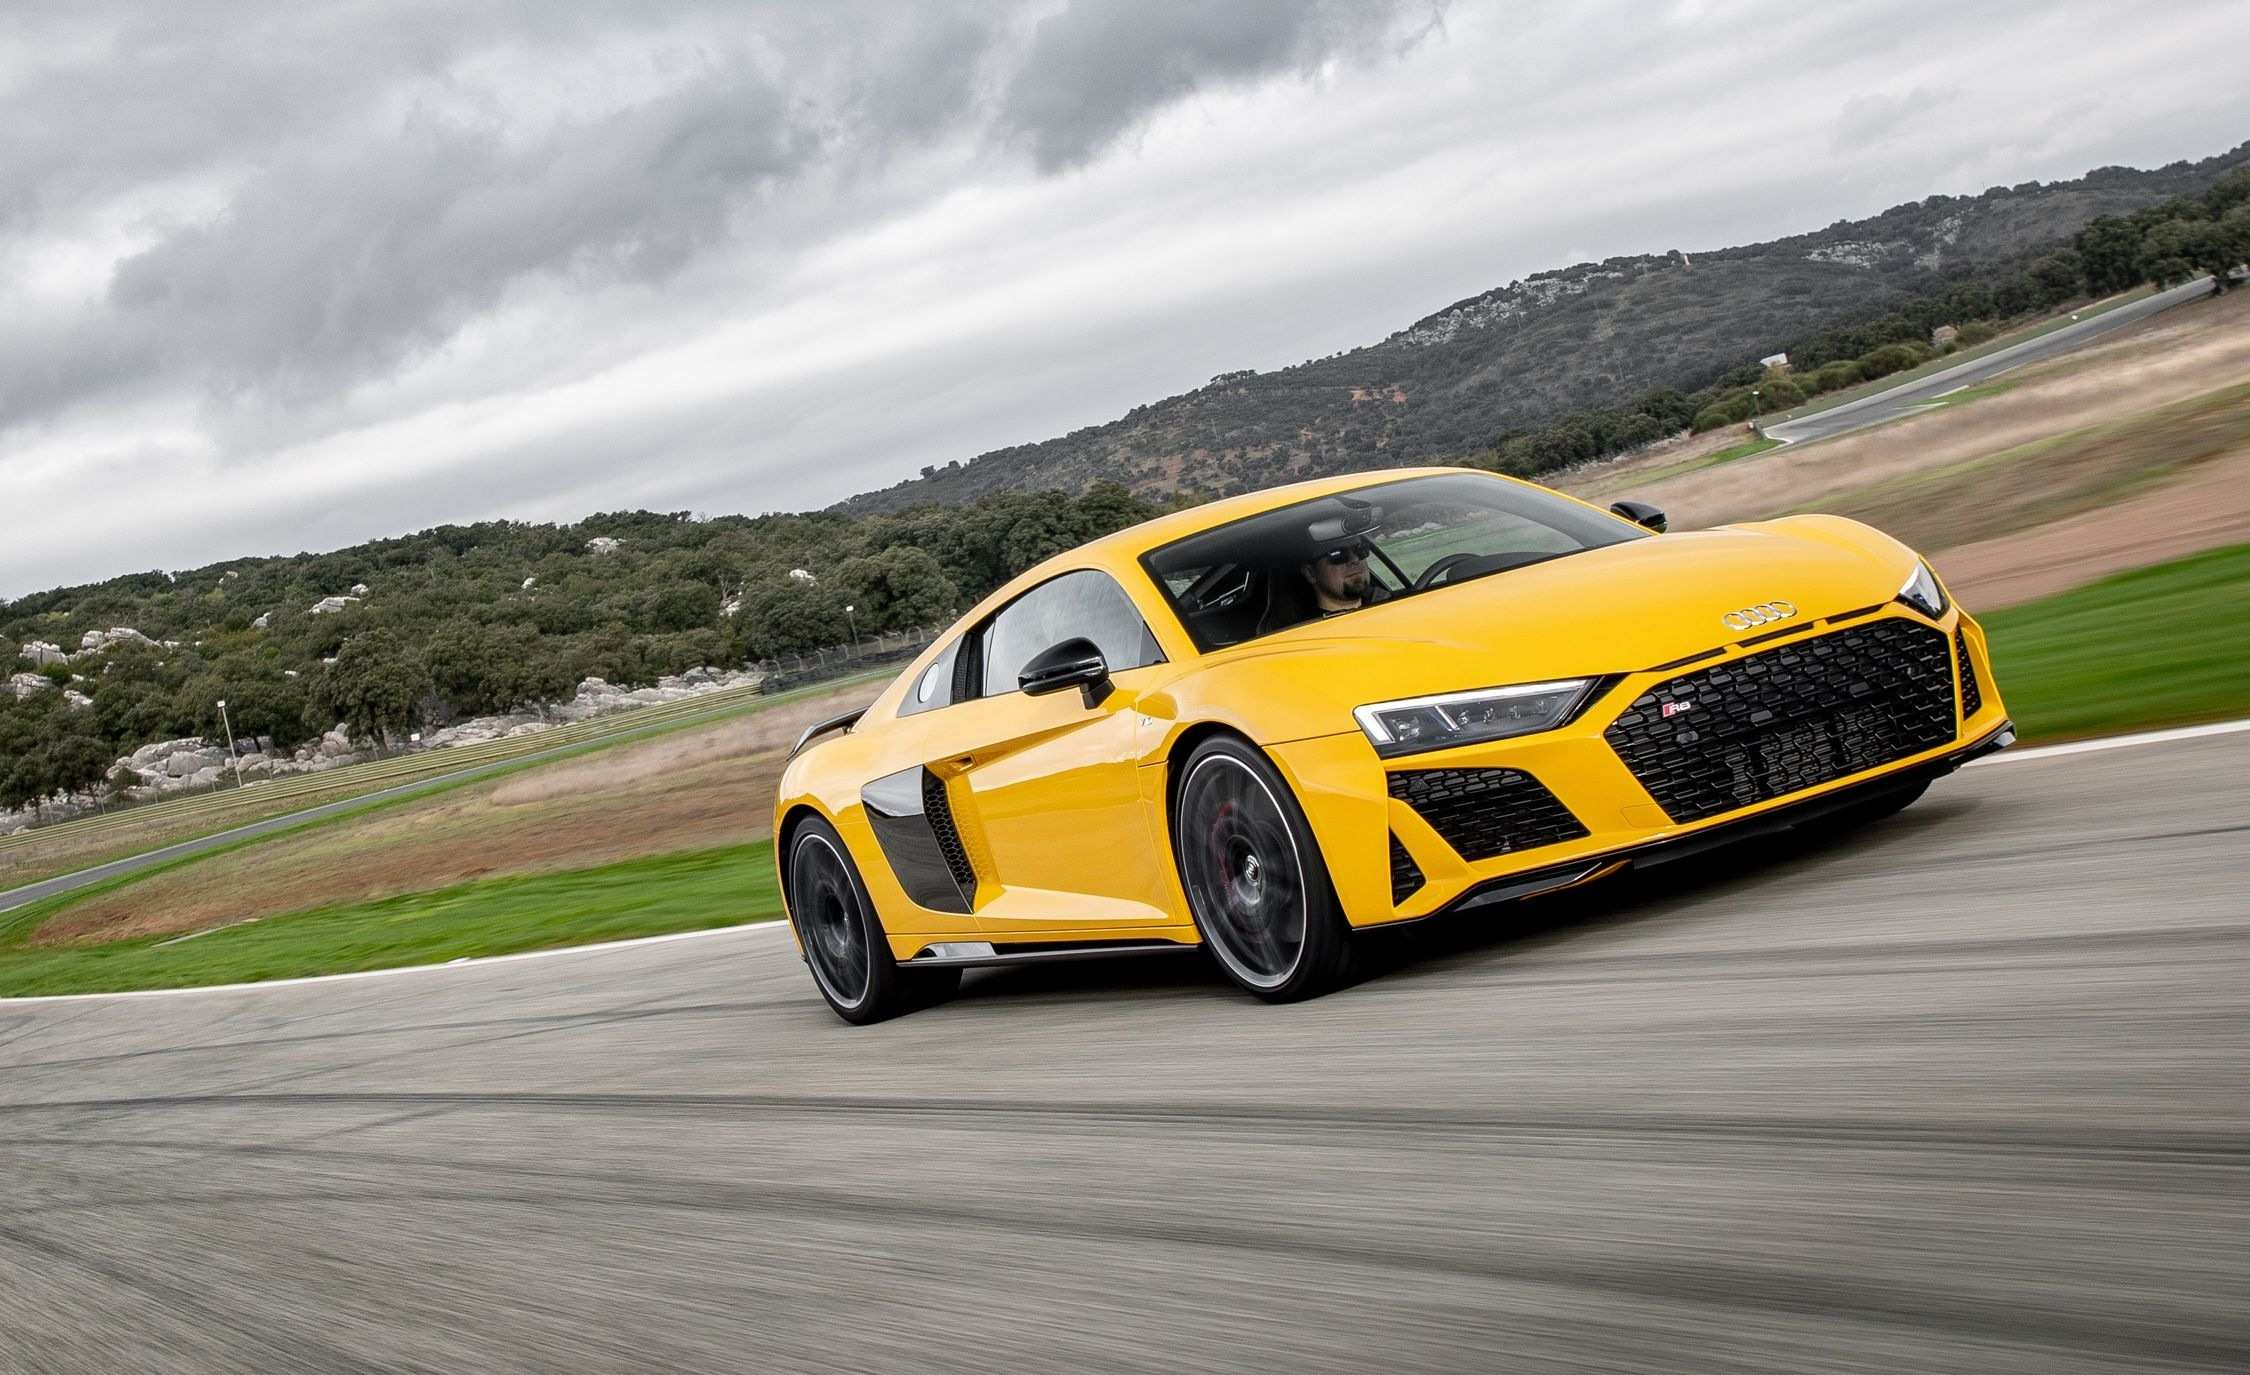 24 The 2020 Audi R8 LMXs Pricing